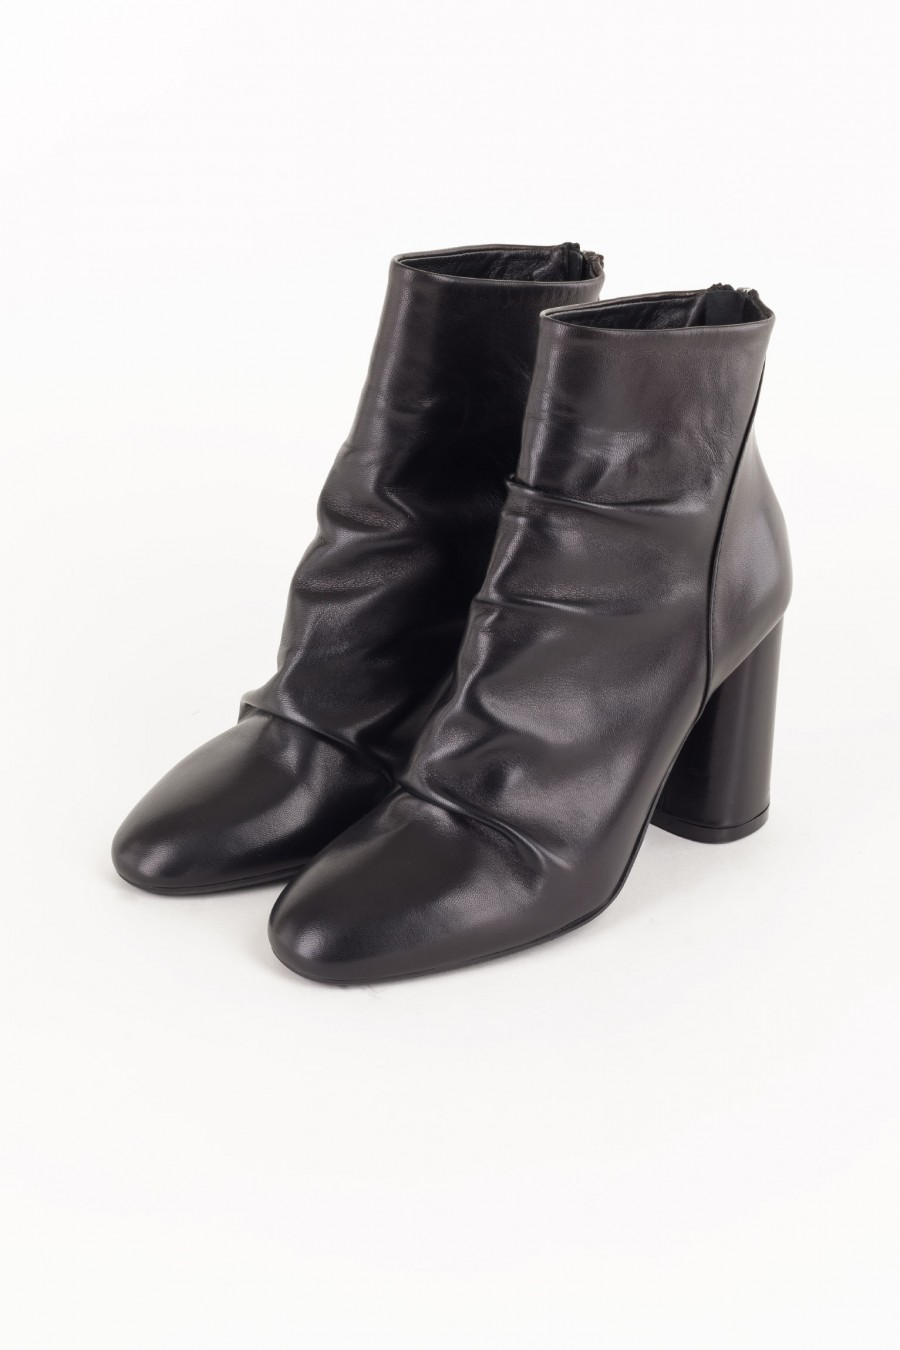 Boots with rounded heels